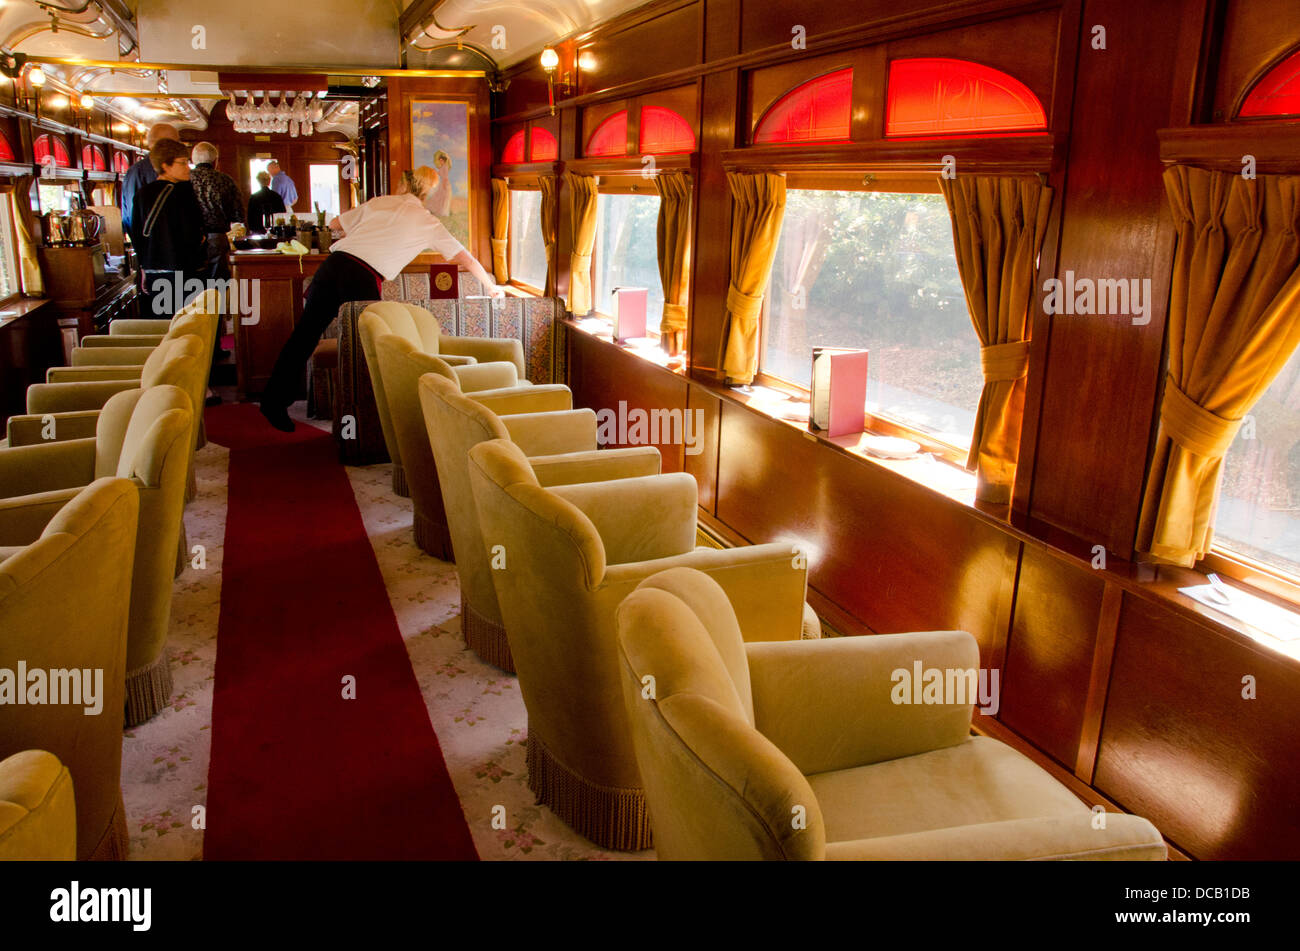 california napa valley wine train historic vintage rail car stock photo royalty free image. Black Bedroom Furniture Sets. Home Design Ideas